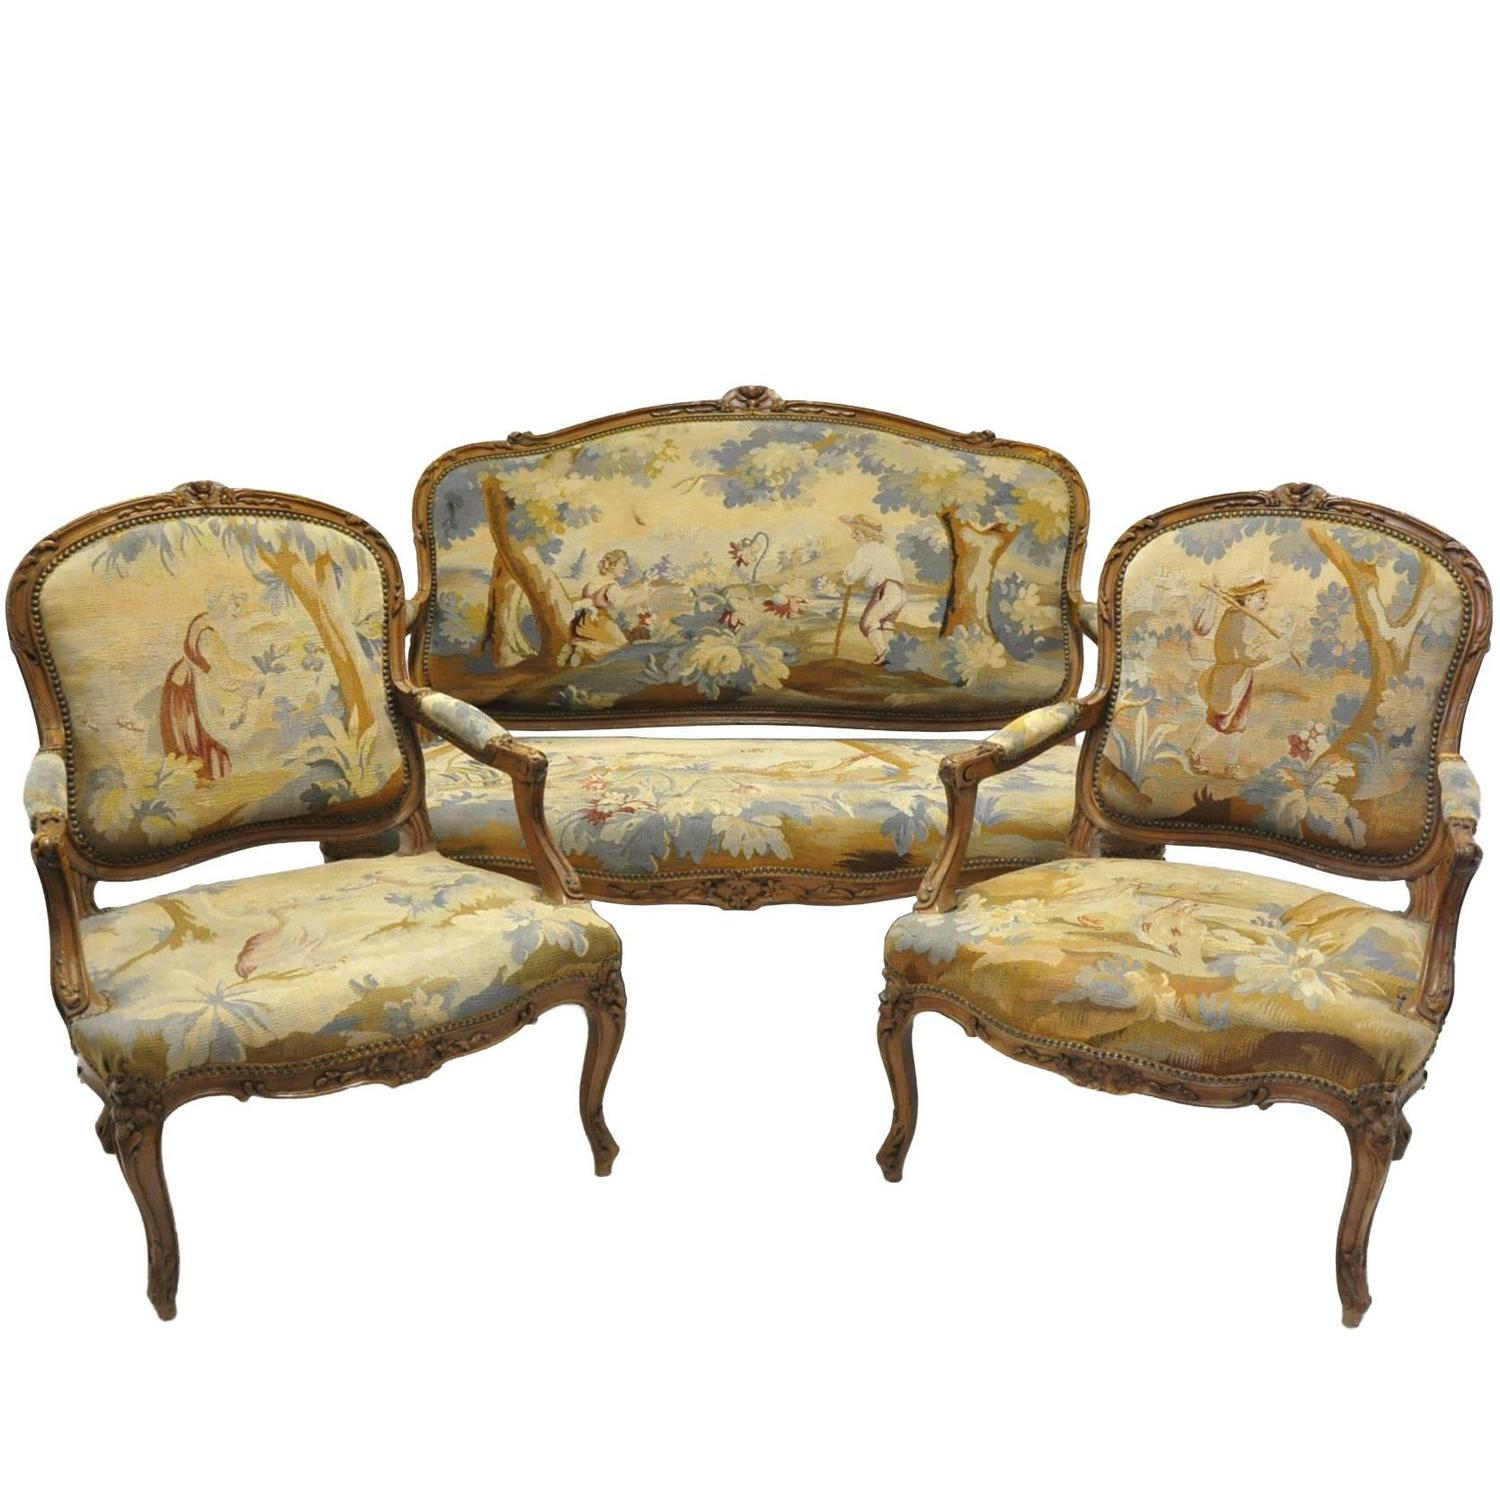 three piece antique louis xv salon seating set with ForSalon Louis Xv